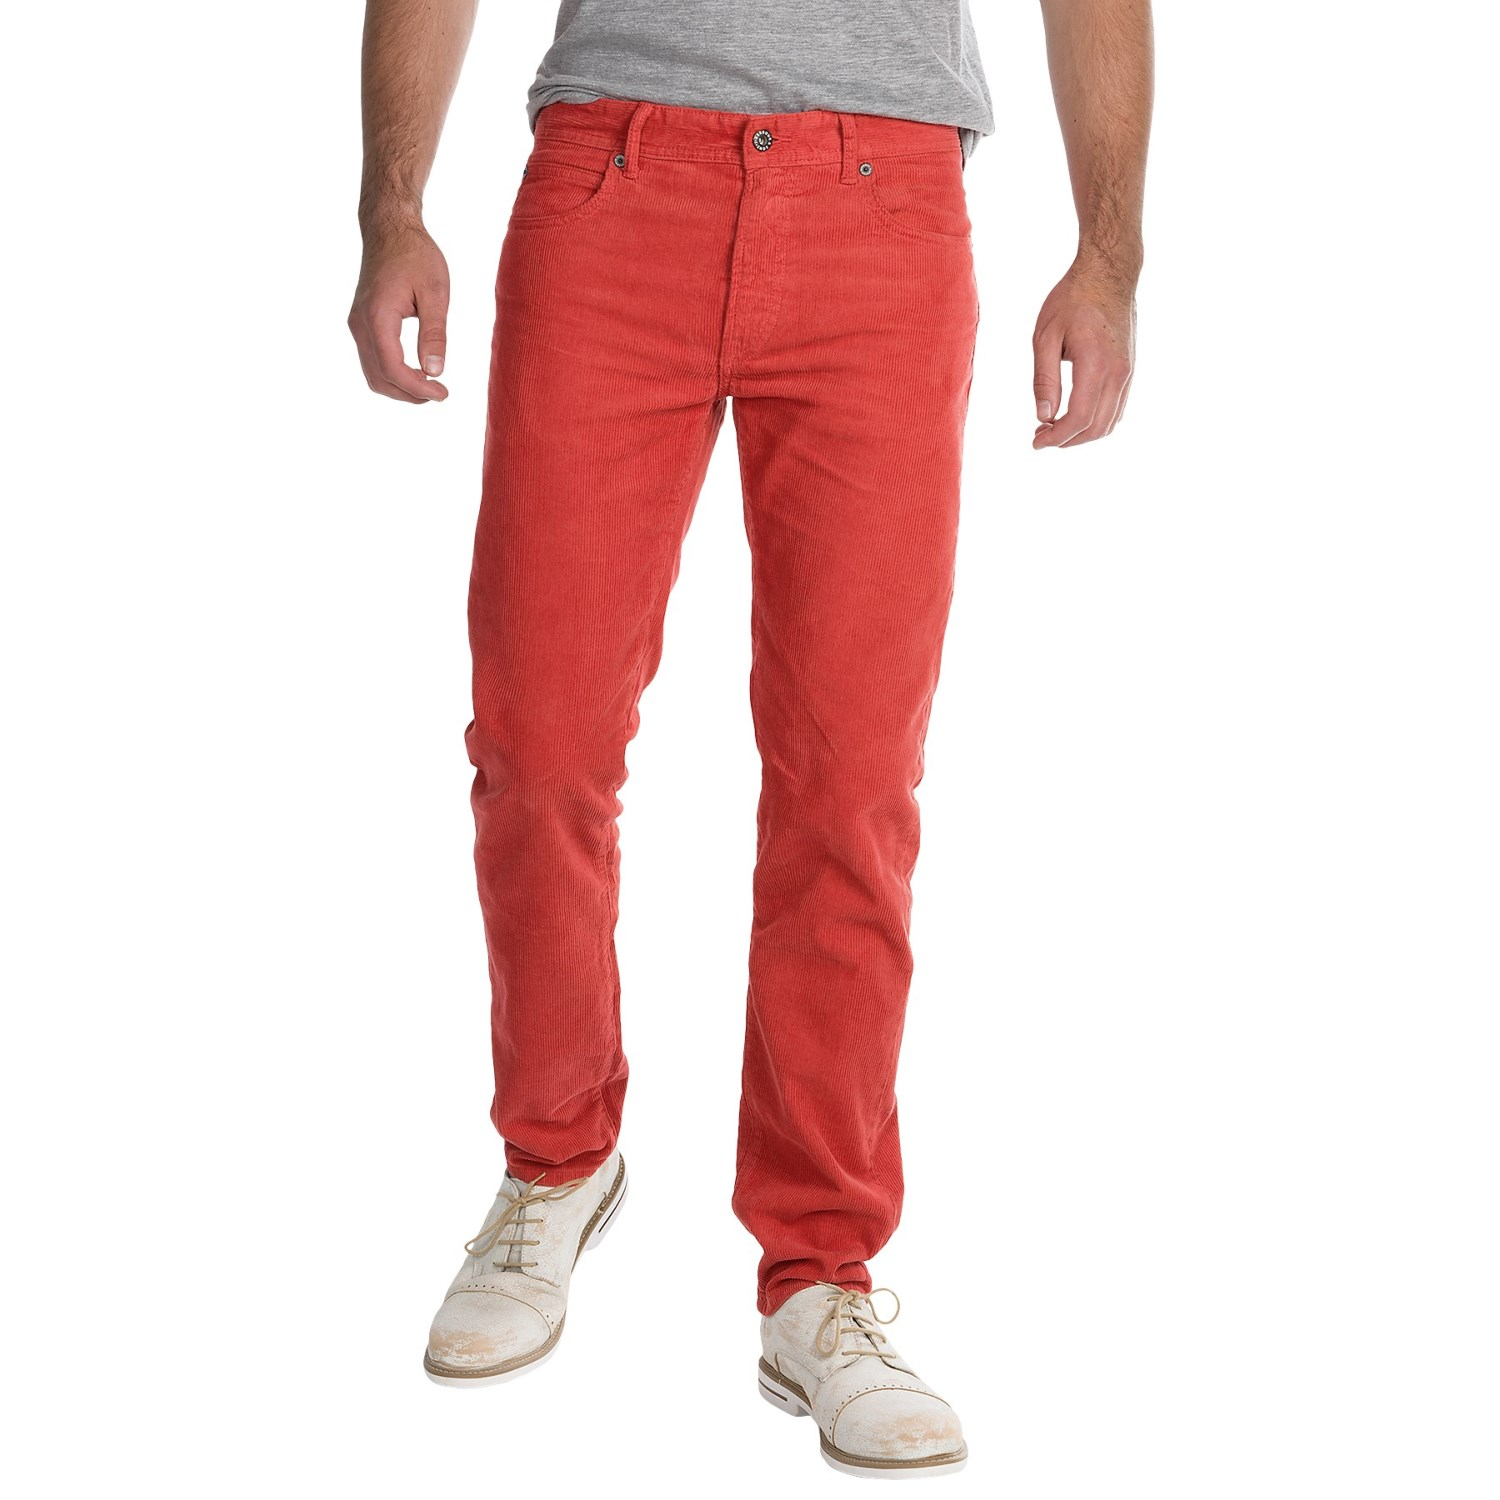 Barbour Essential Skinny Corduroy Pants (For Men) - Save 82%